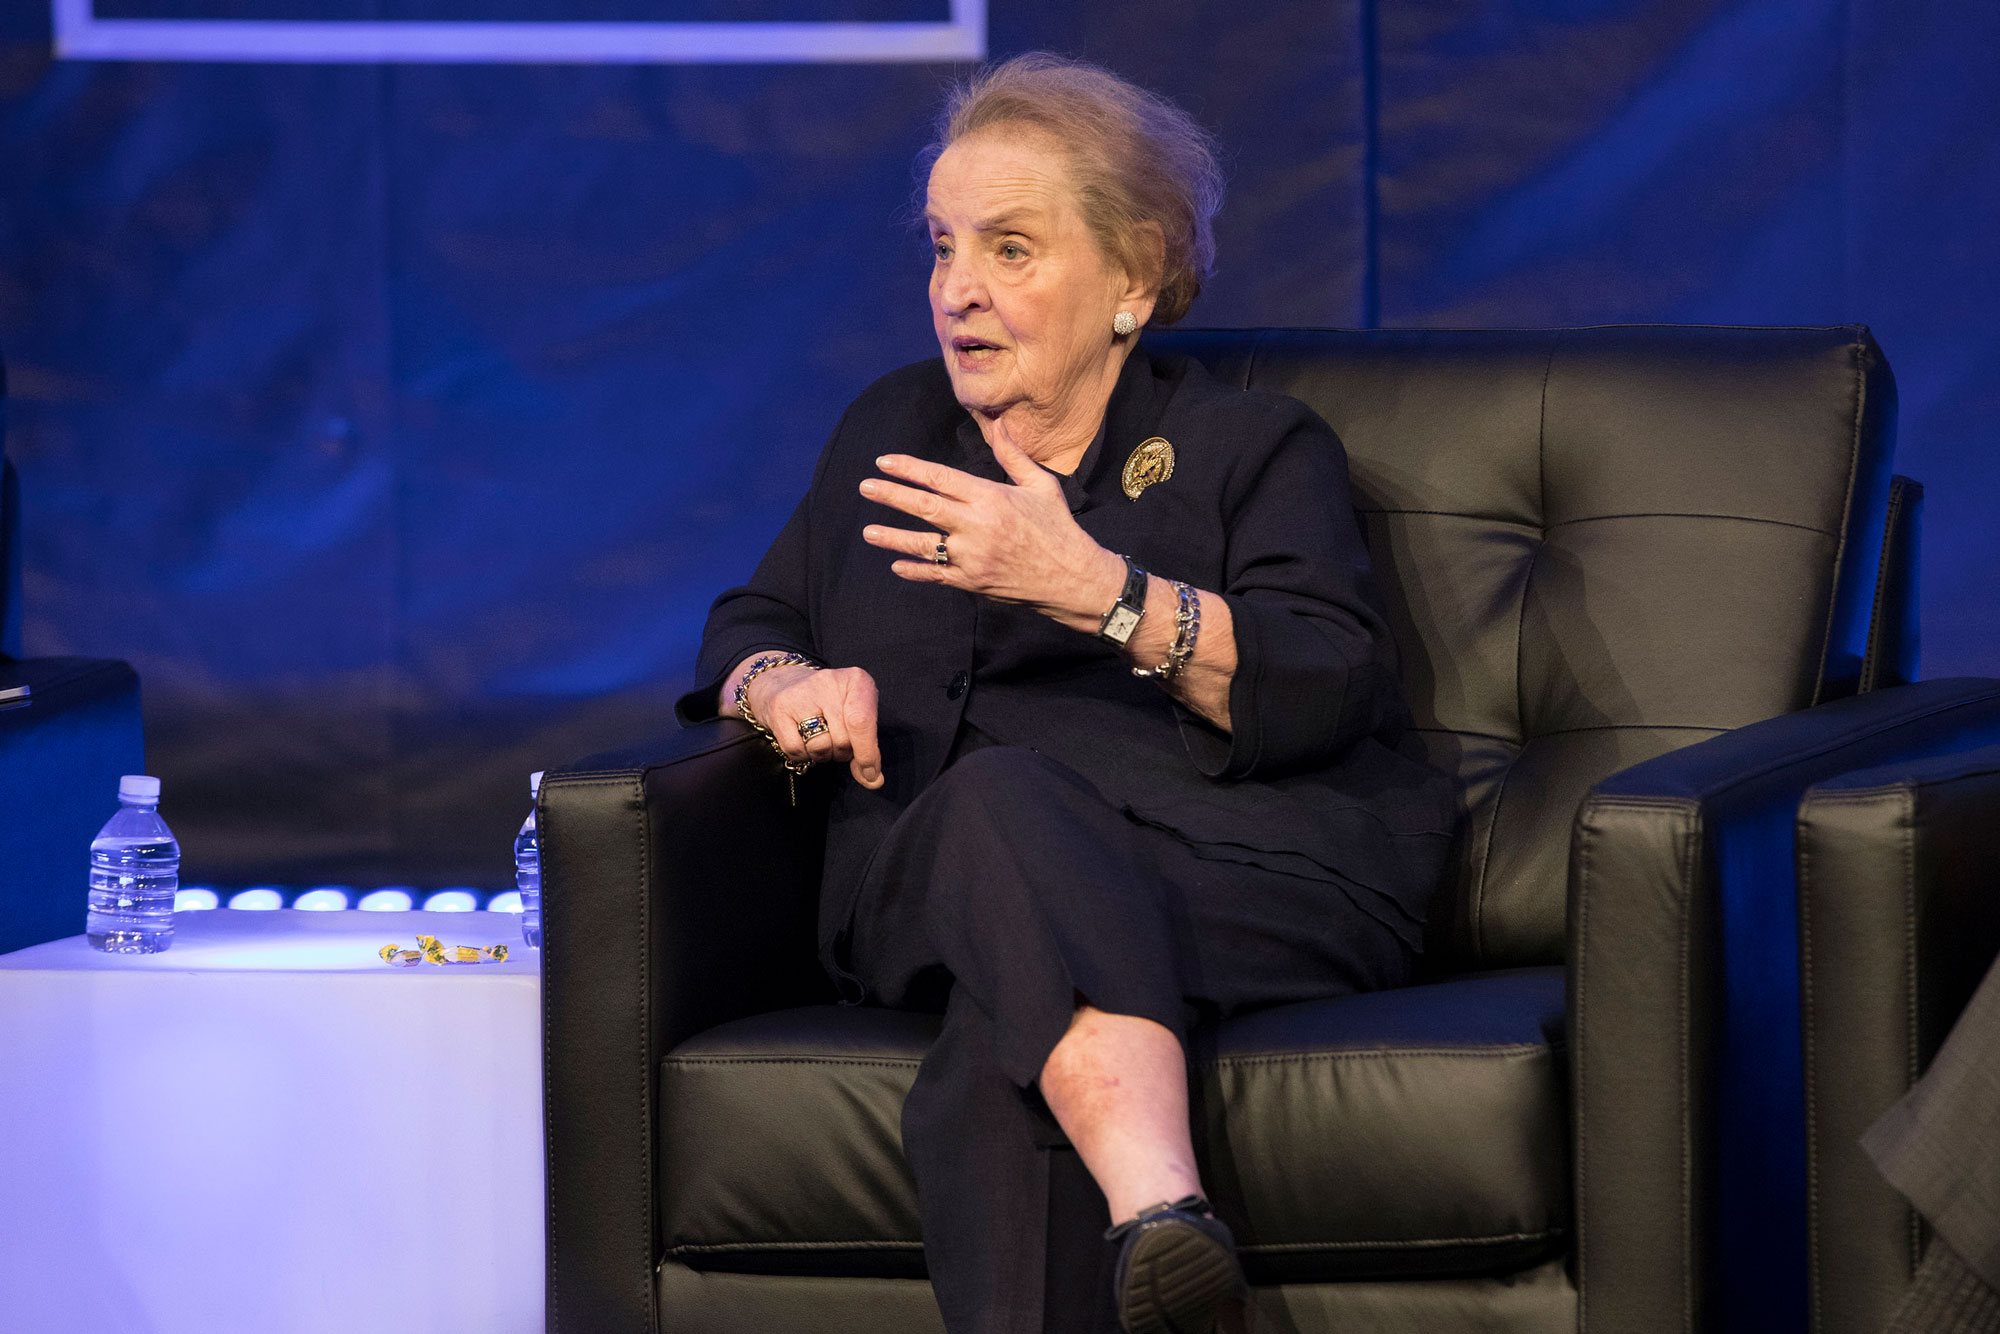 Madeleine Albright said America's relationship with China should be a top concern for any president or presidential candidate. (Photo by Dan Addison, University Communications)